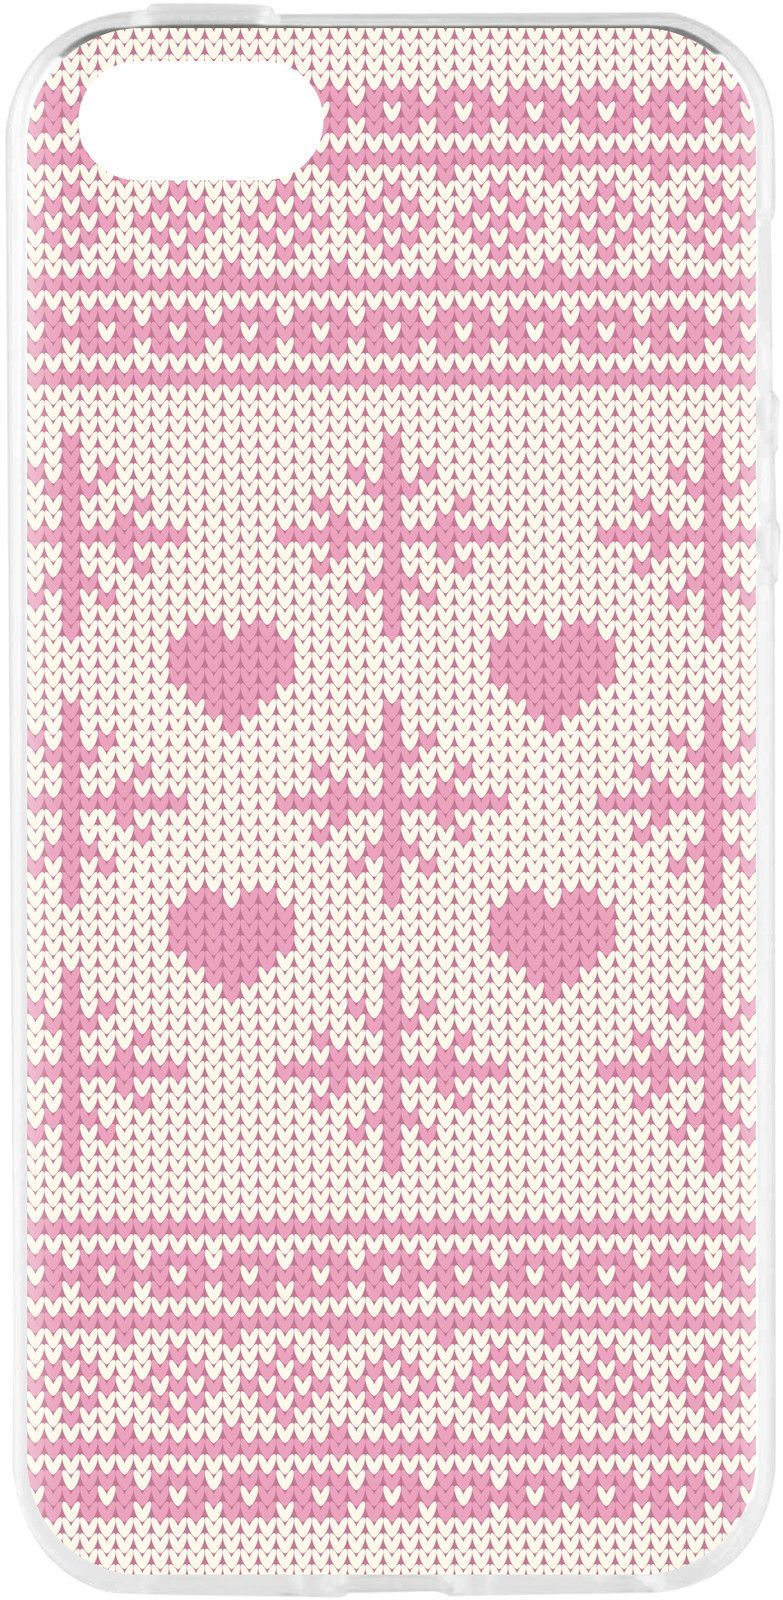 Flavr Xmas Pink Ugly Sweater (iPhone 5/5S/SE)